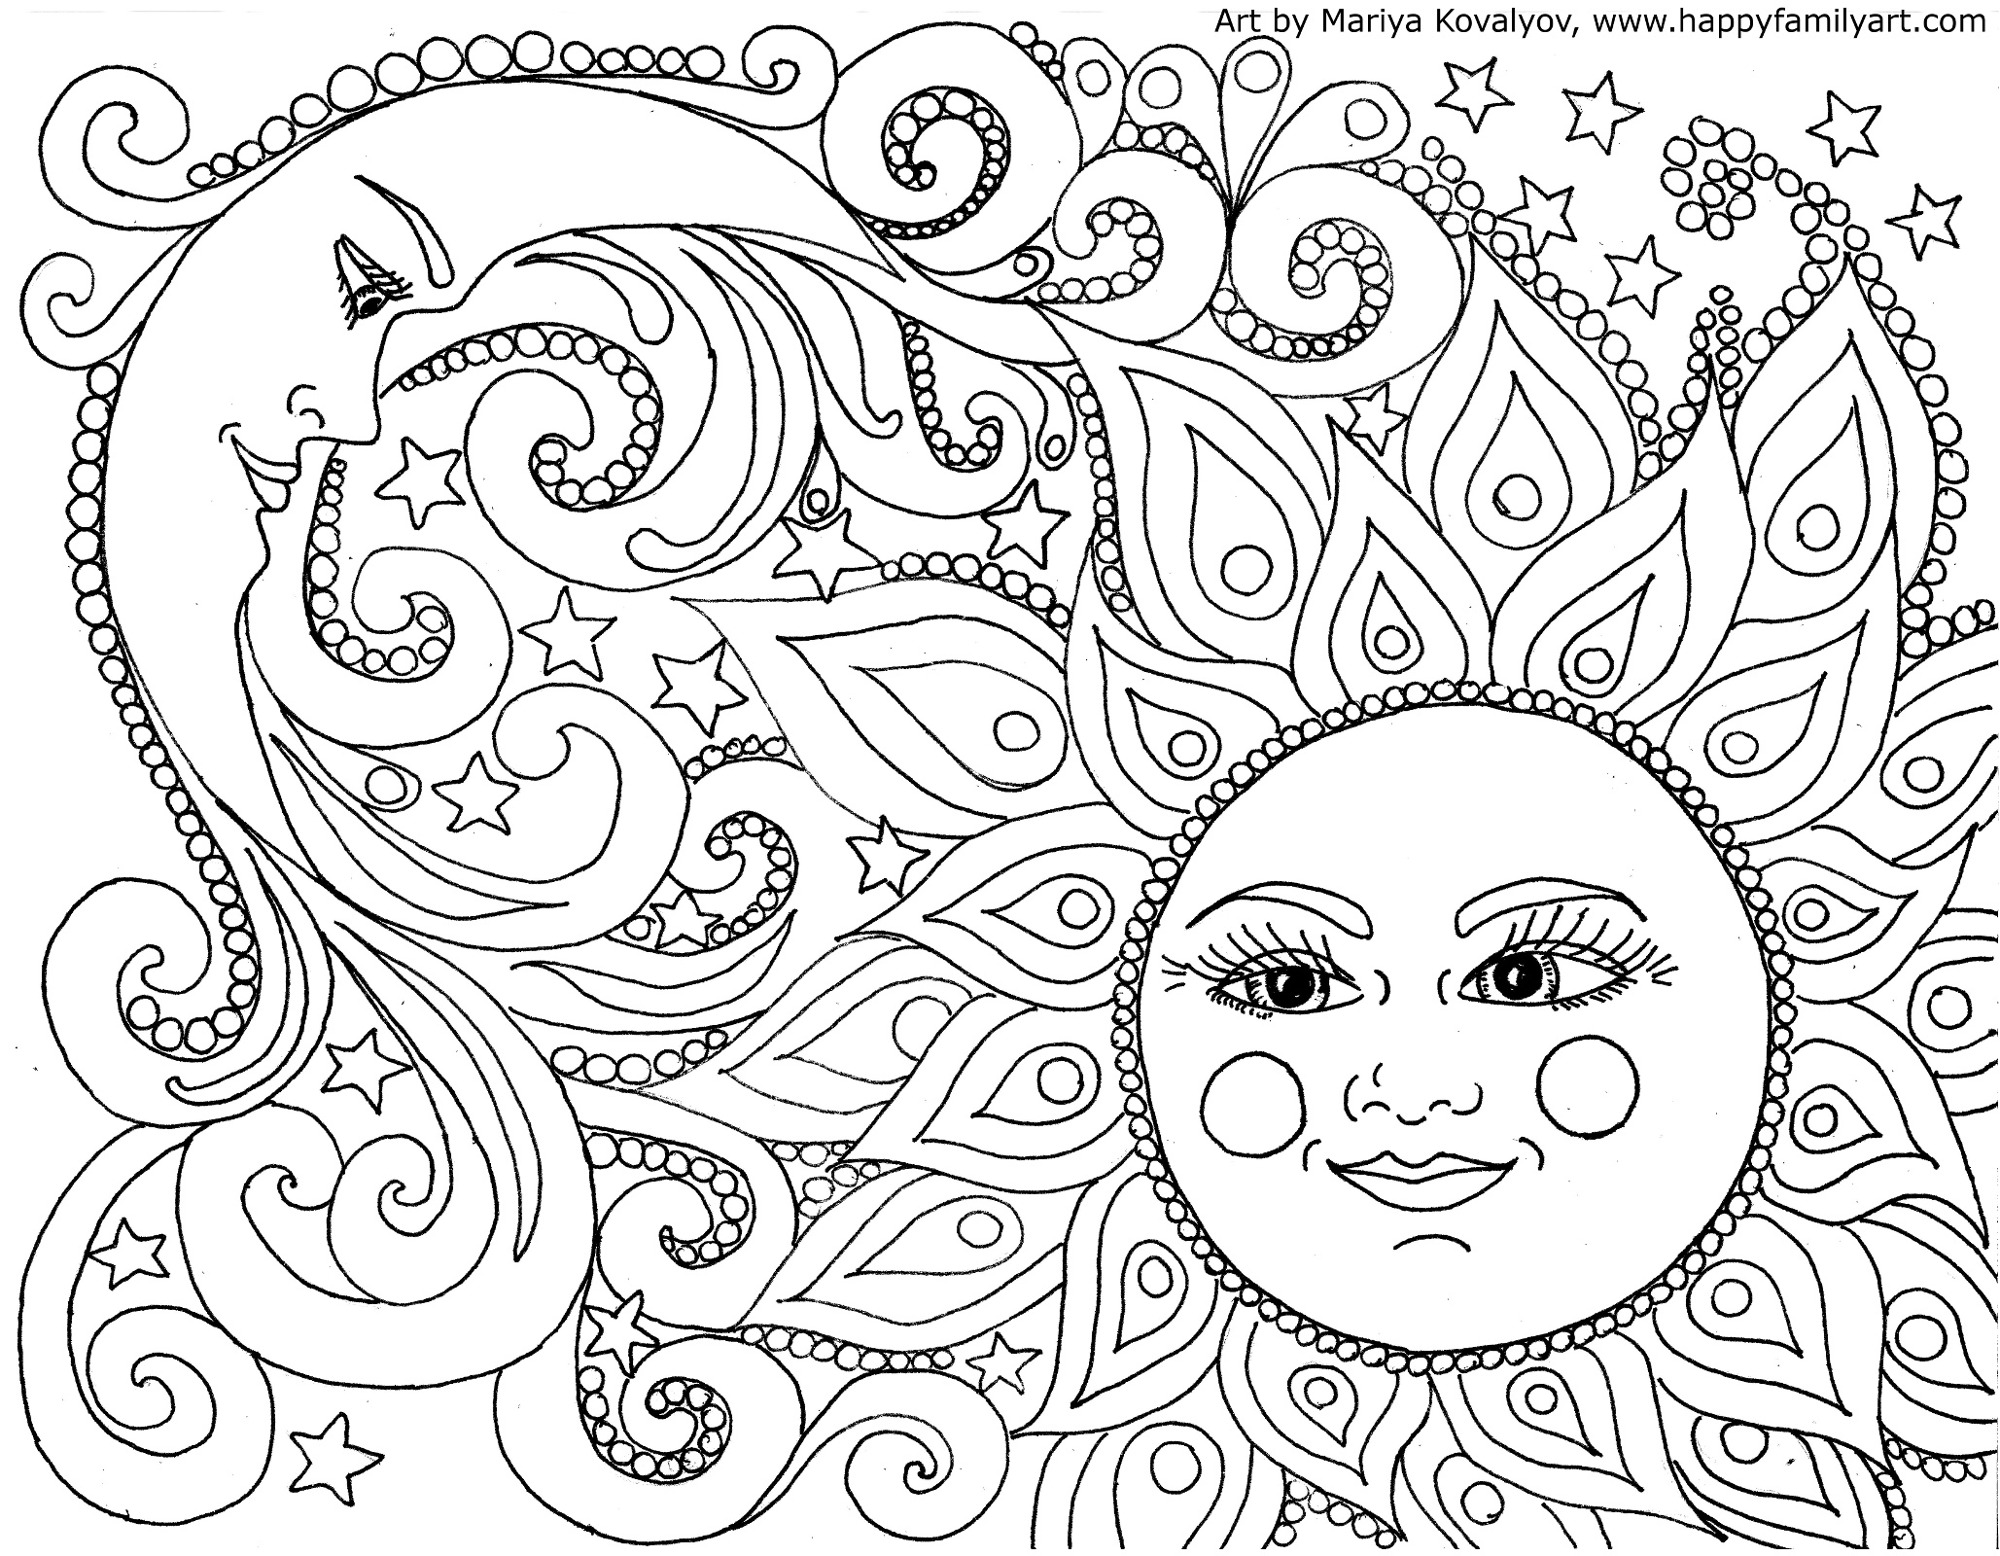 Spring Coloring Pages For Adults Classy Happy Family Art  Original And Fun Coloring Pages